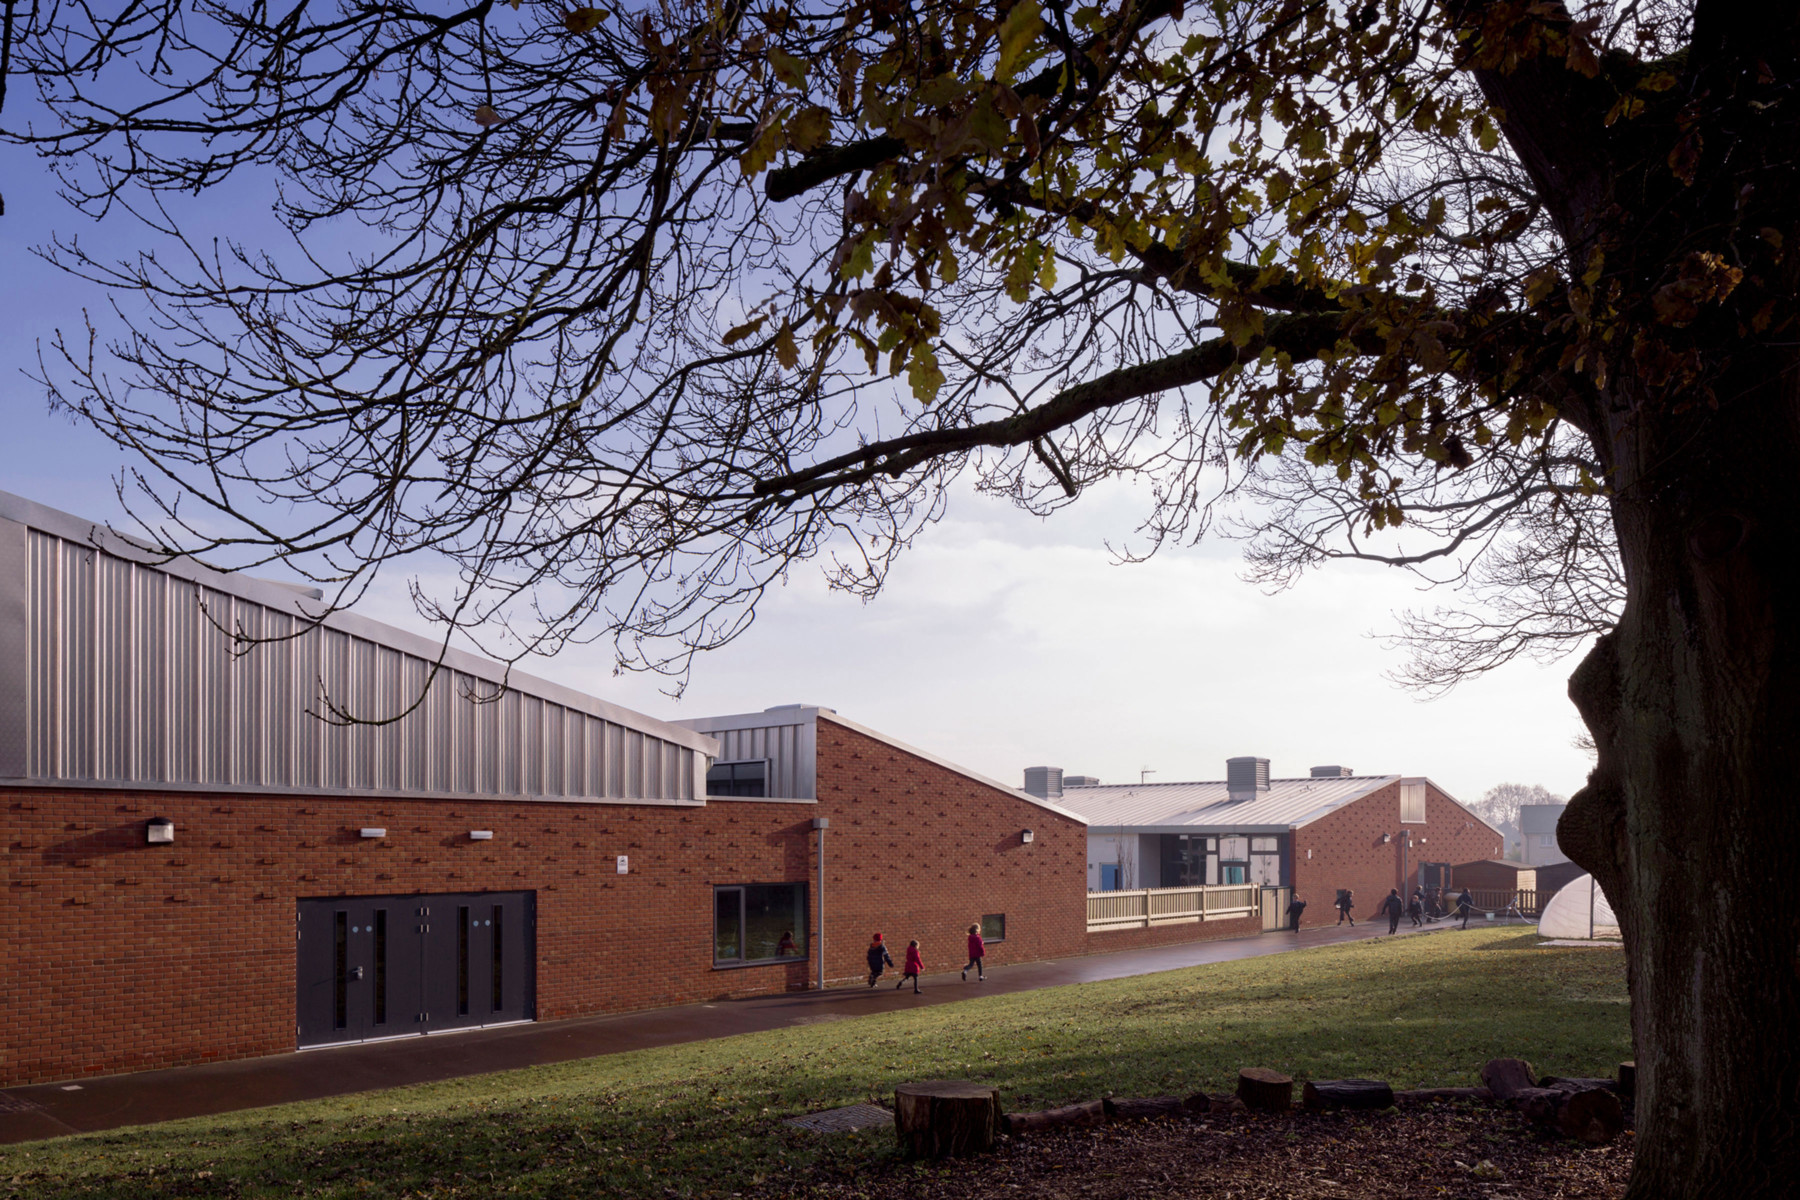 Sarah-Wigglesworth-Architects Takeley-Primary-School Hall-External 3600